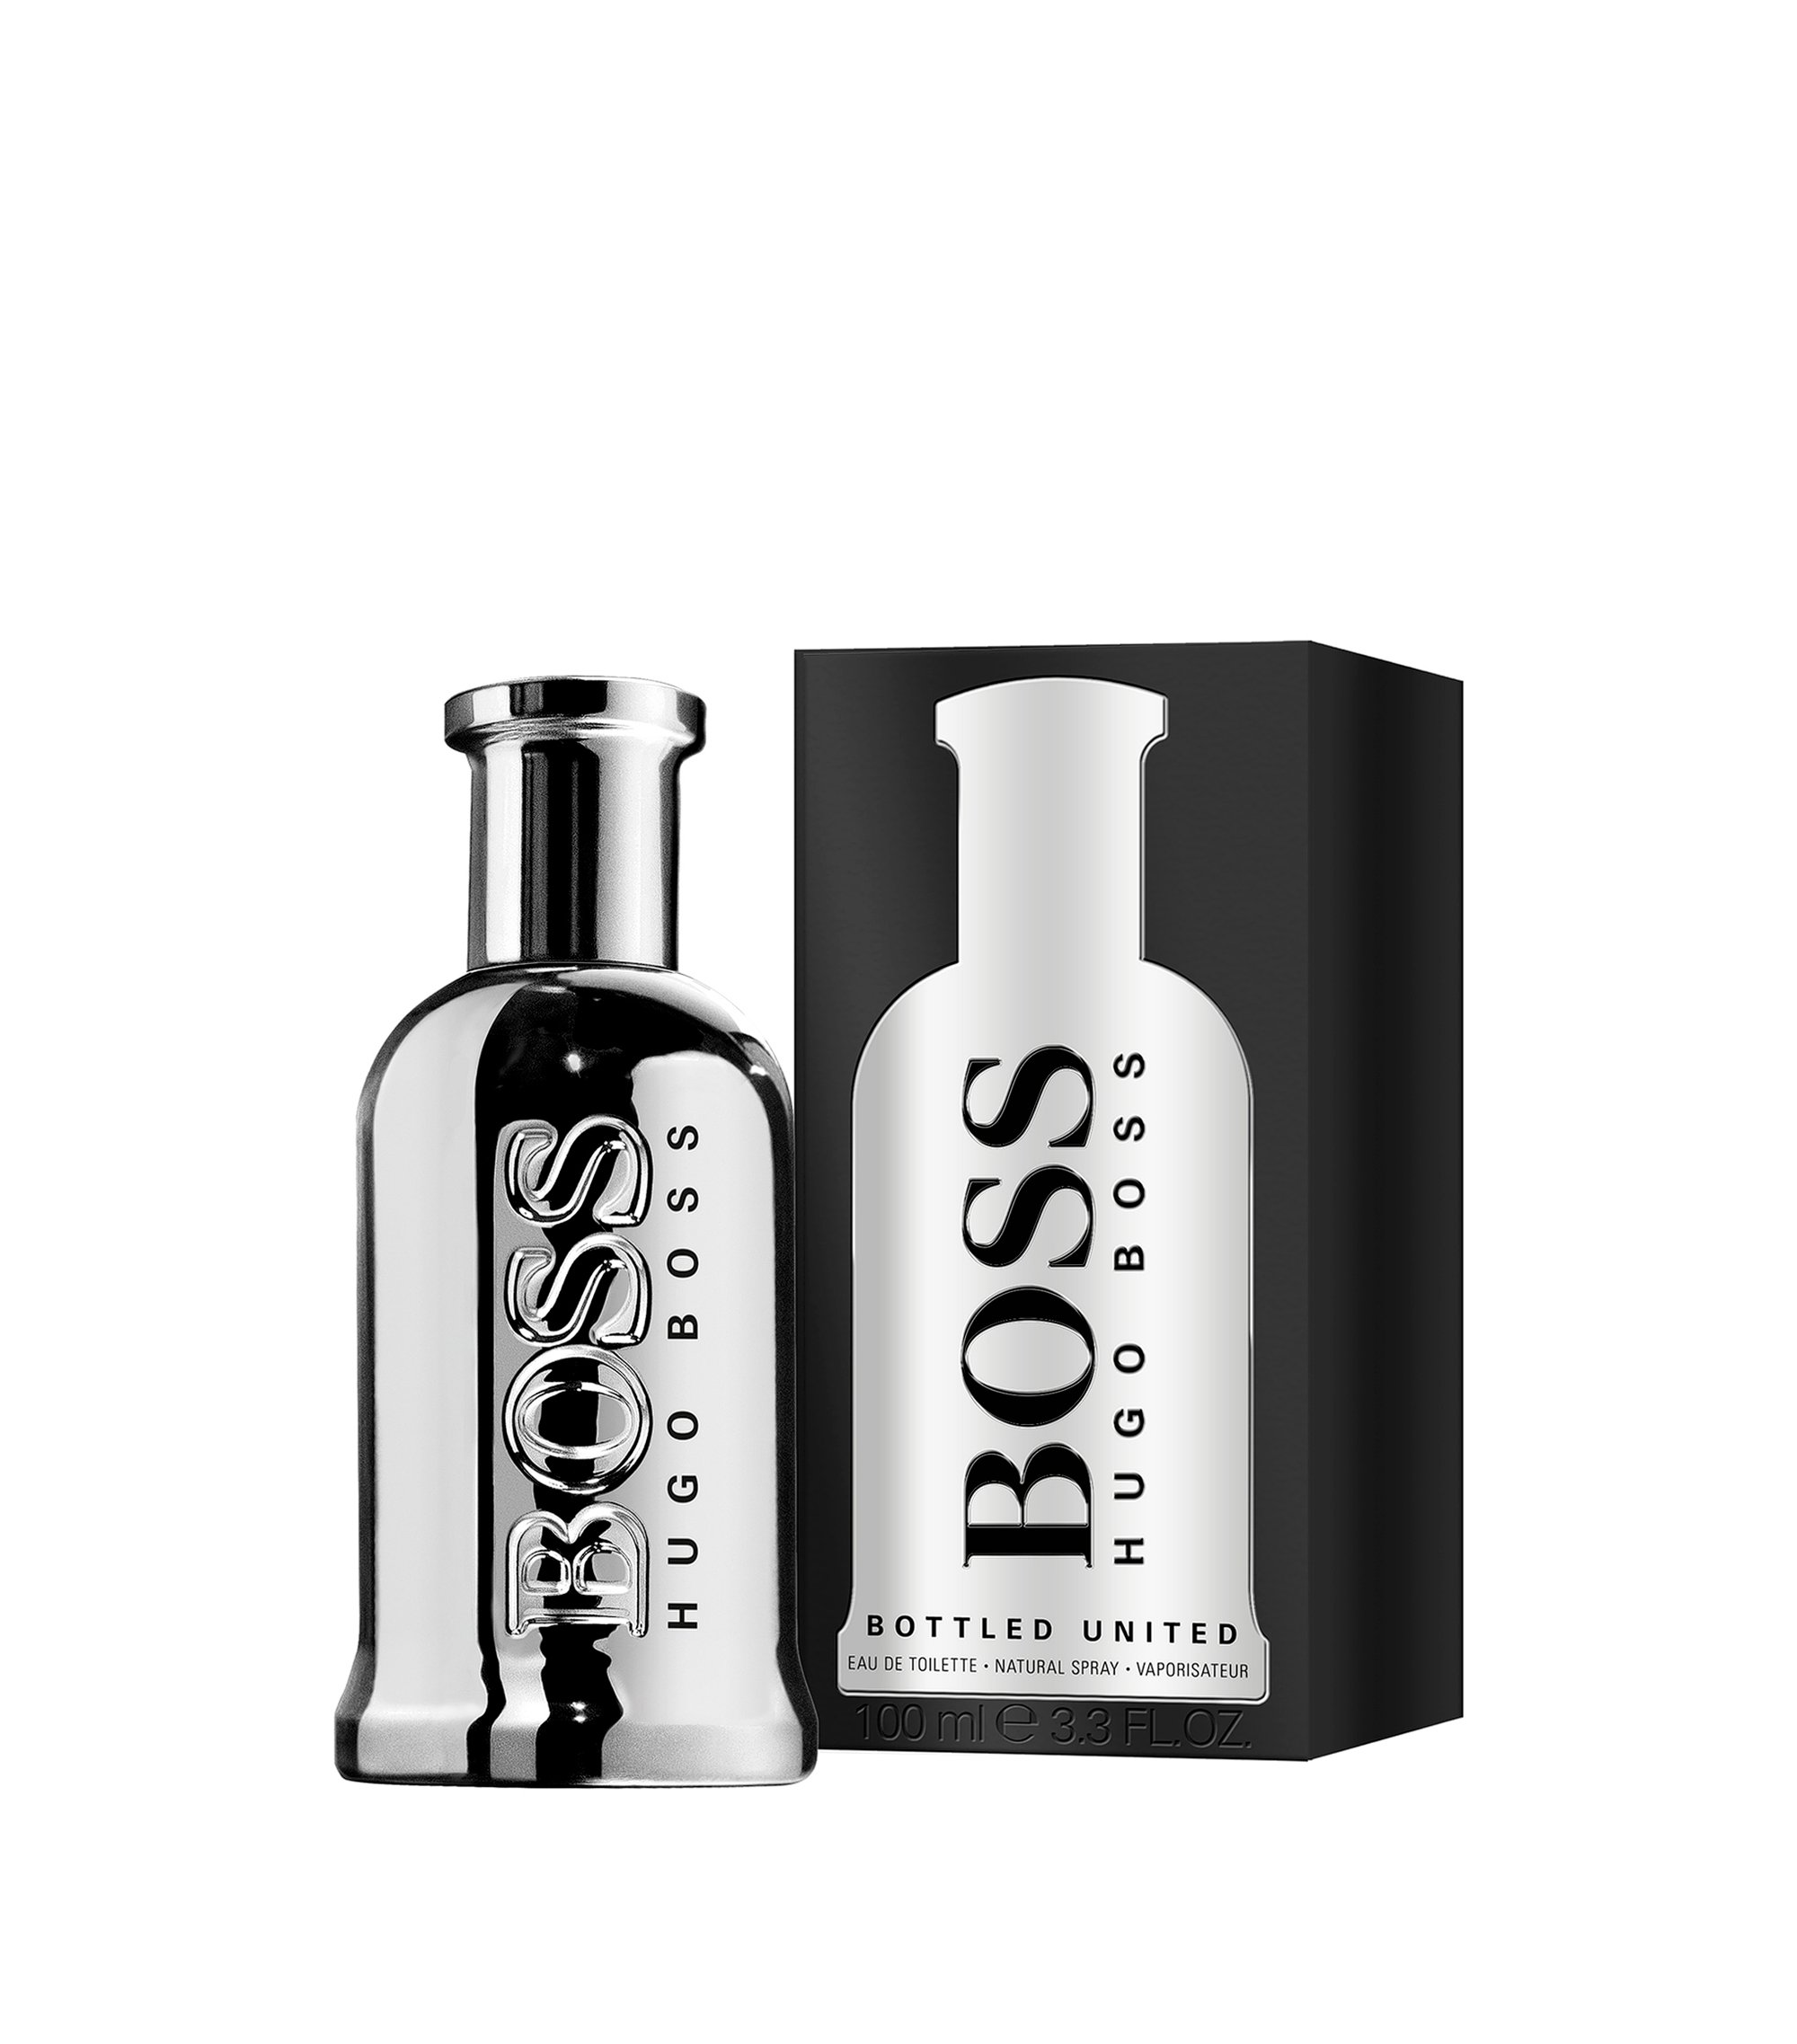 BOSS Bottled United 100ml eau de toilette, Assorted-Pre-Pack